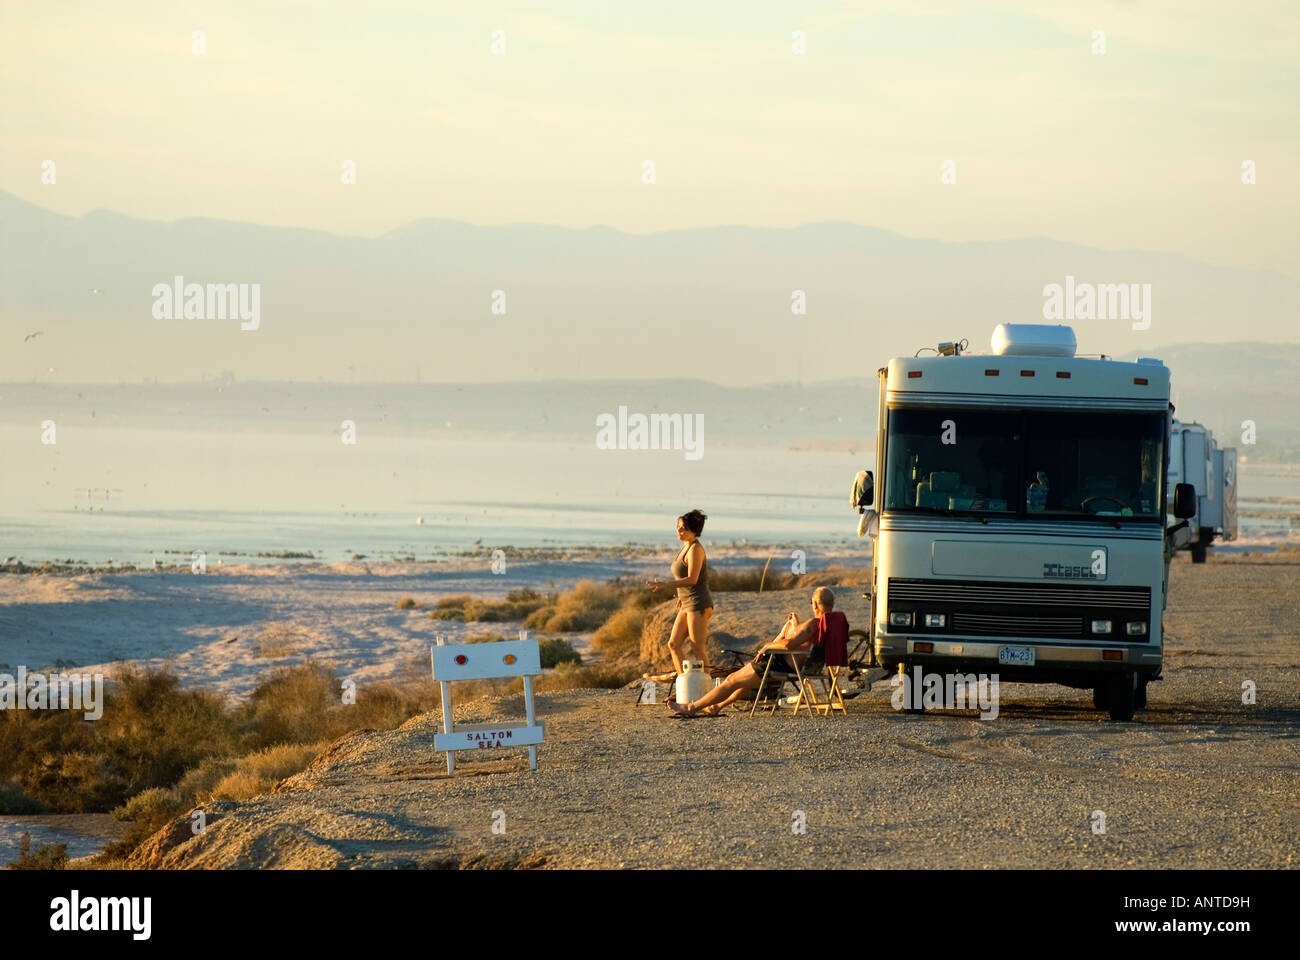 Campers In An Rv On The Shore Of The Salton Sea California Stock Photo Royalty Free Image